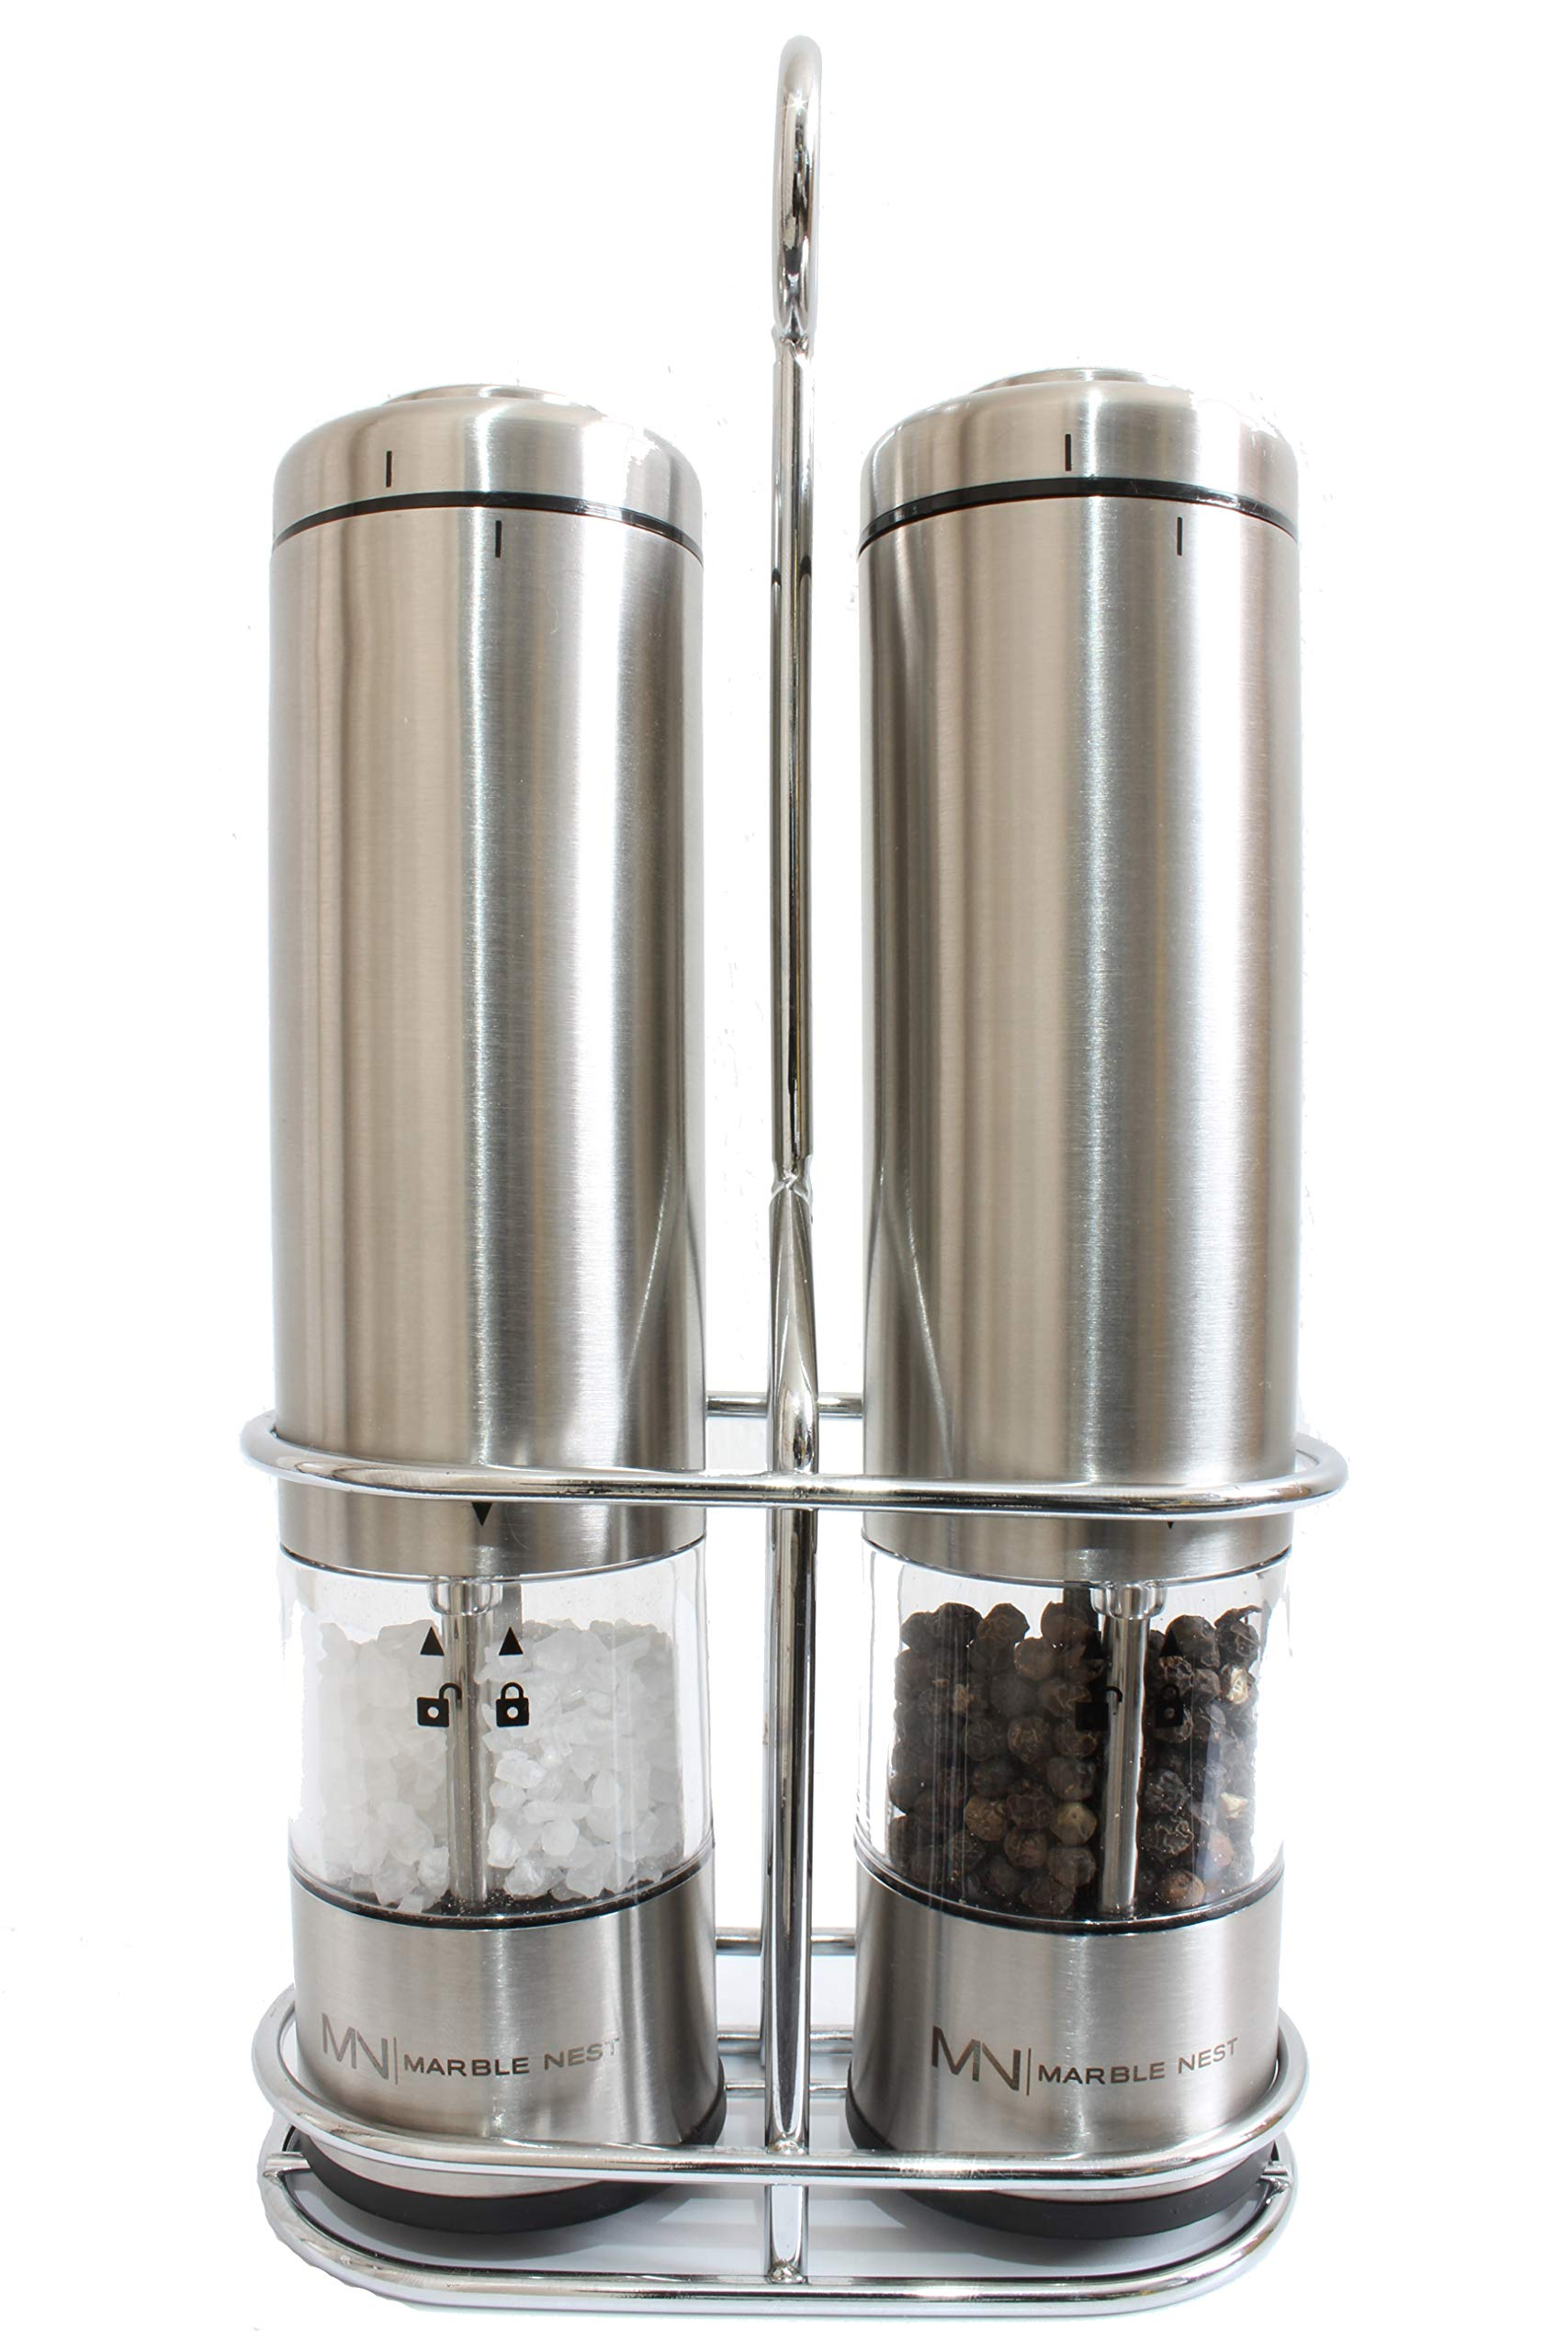 Electric Salt and Pepper Grinder Set (Battery Operated) by Marble Nest - Premium Stainless Steel with Stand - LED Light - Ceramic Mill - Adjustable Fine to Coarse Knob - Separate Battery Compartment by Marble Nest